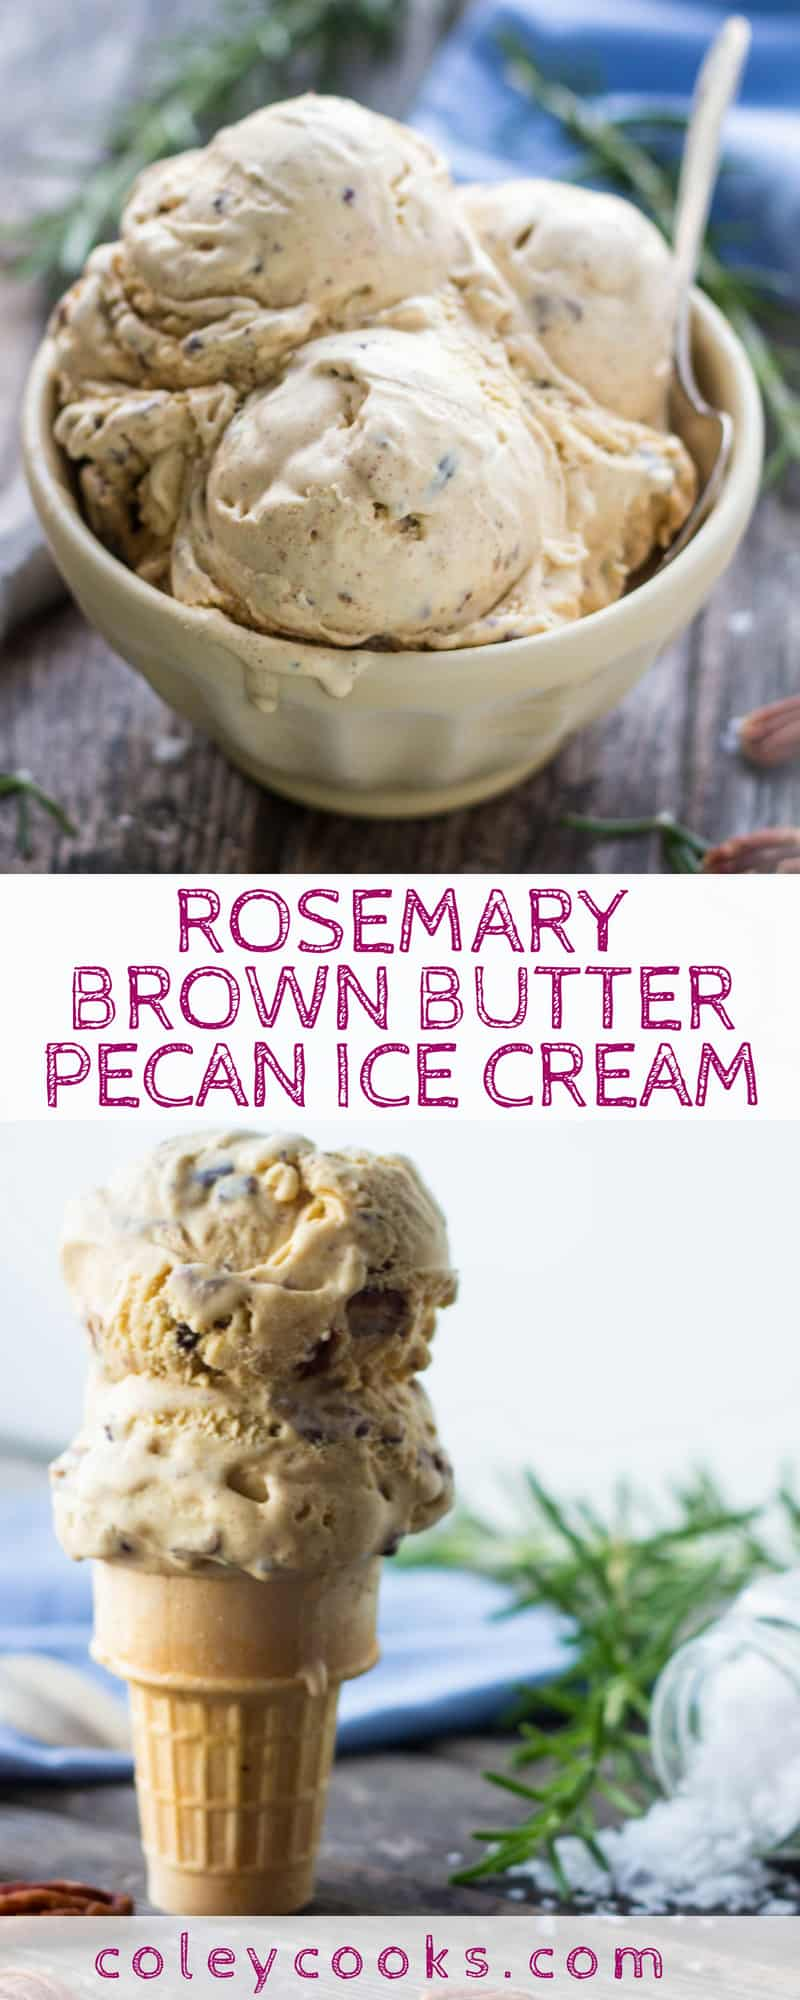 This recipe for Rosemary Brown Butter Pecan Ice Cream is an over the top play on traditional butter pecan ice cream. Rich, buttery, and loaded with salty pecans. #icecream #recipe #butterpecan #brownbutter | ColeyCooks.com